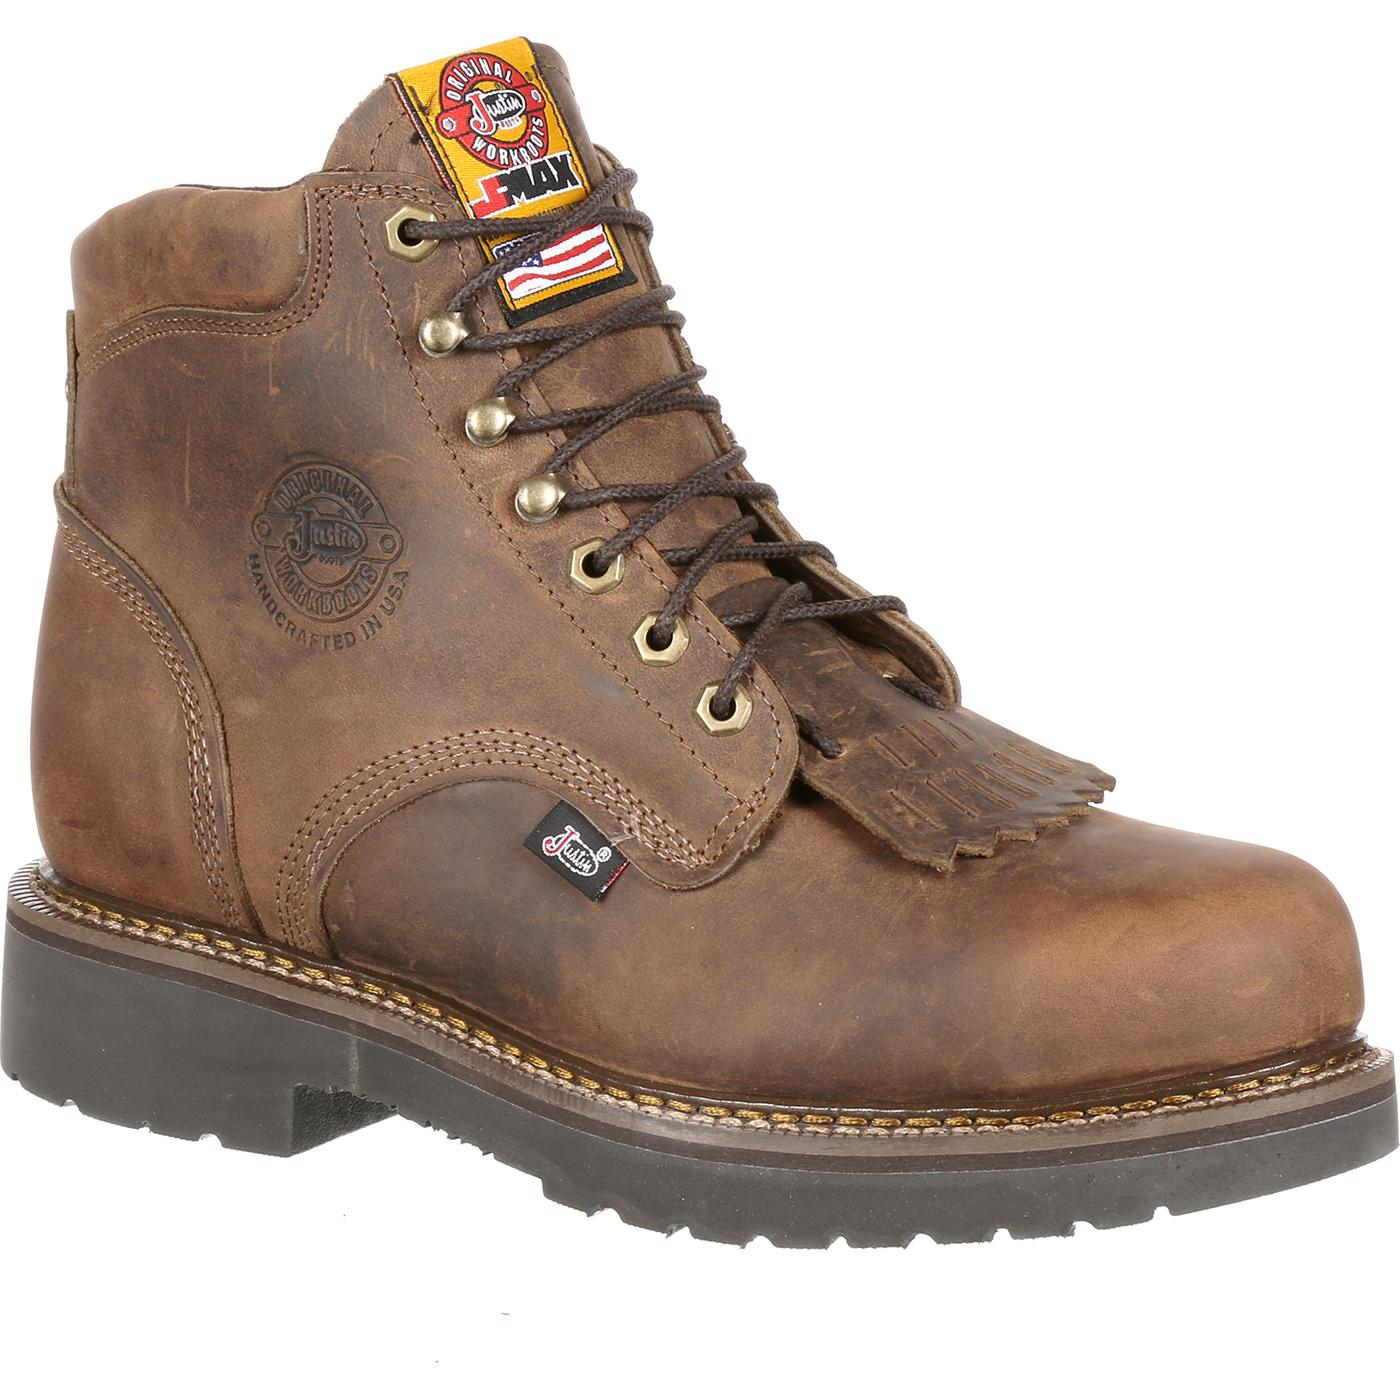 justin work steel toe csa approved puncture resistant work